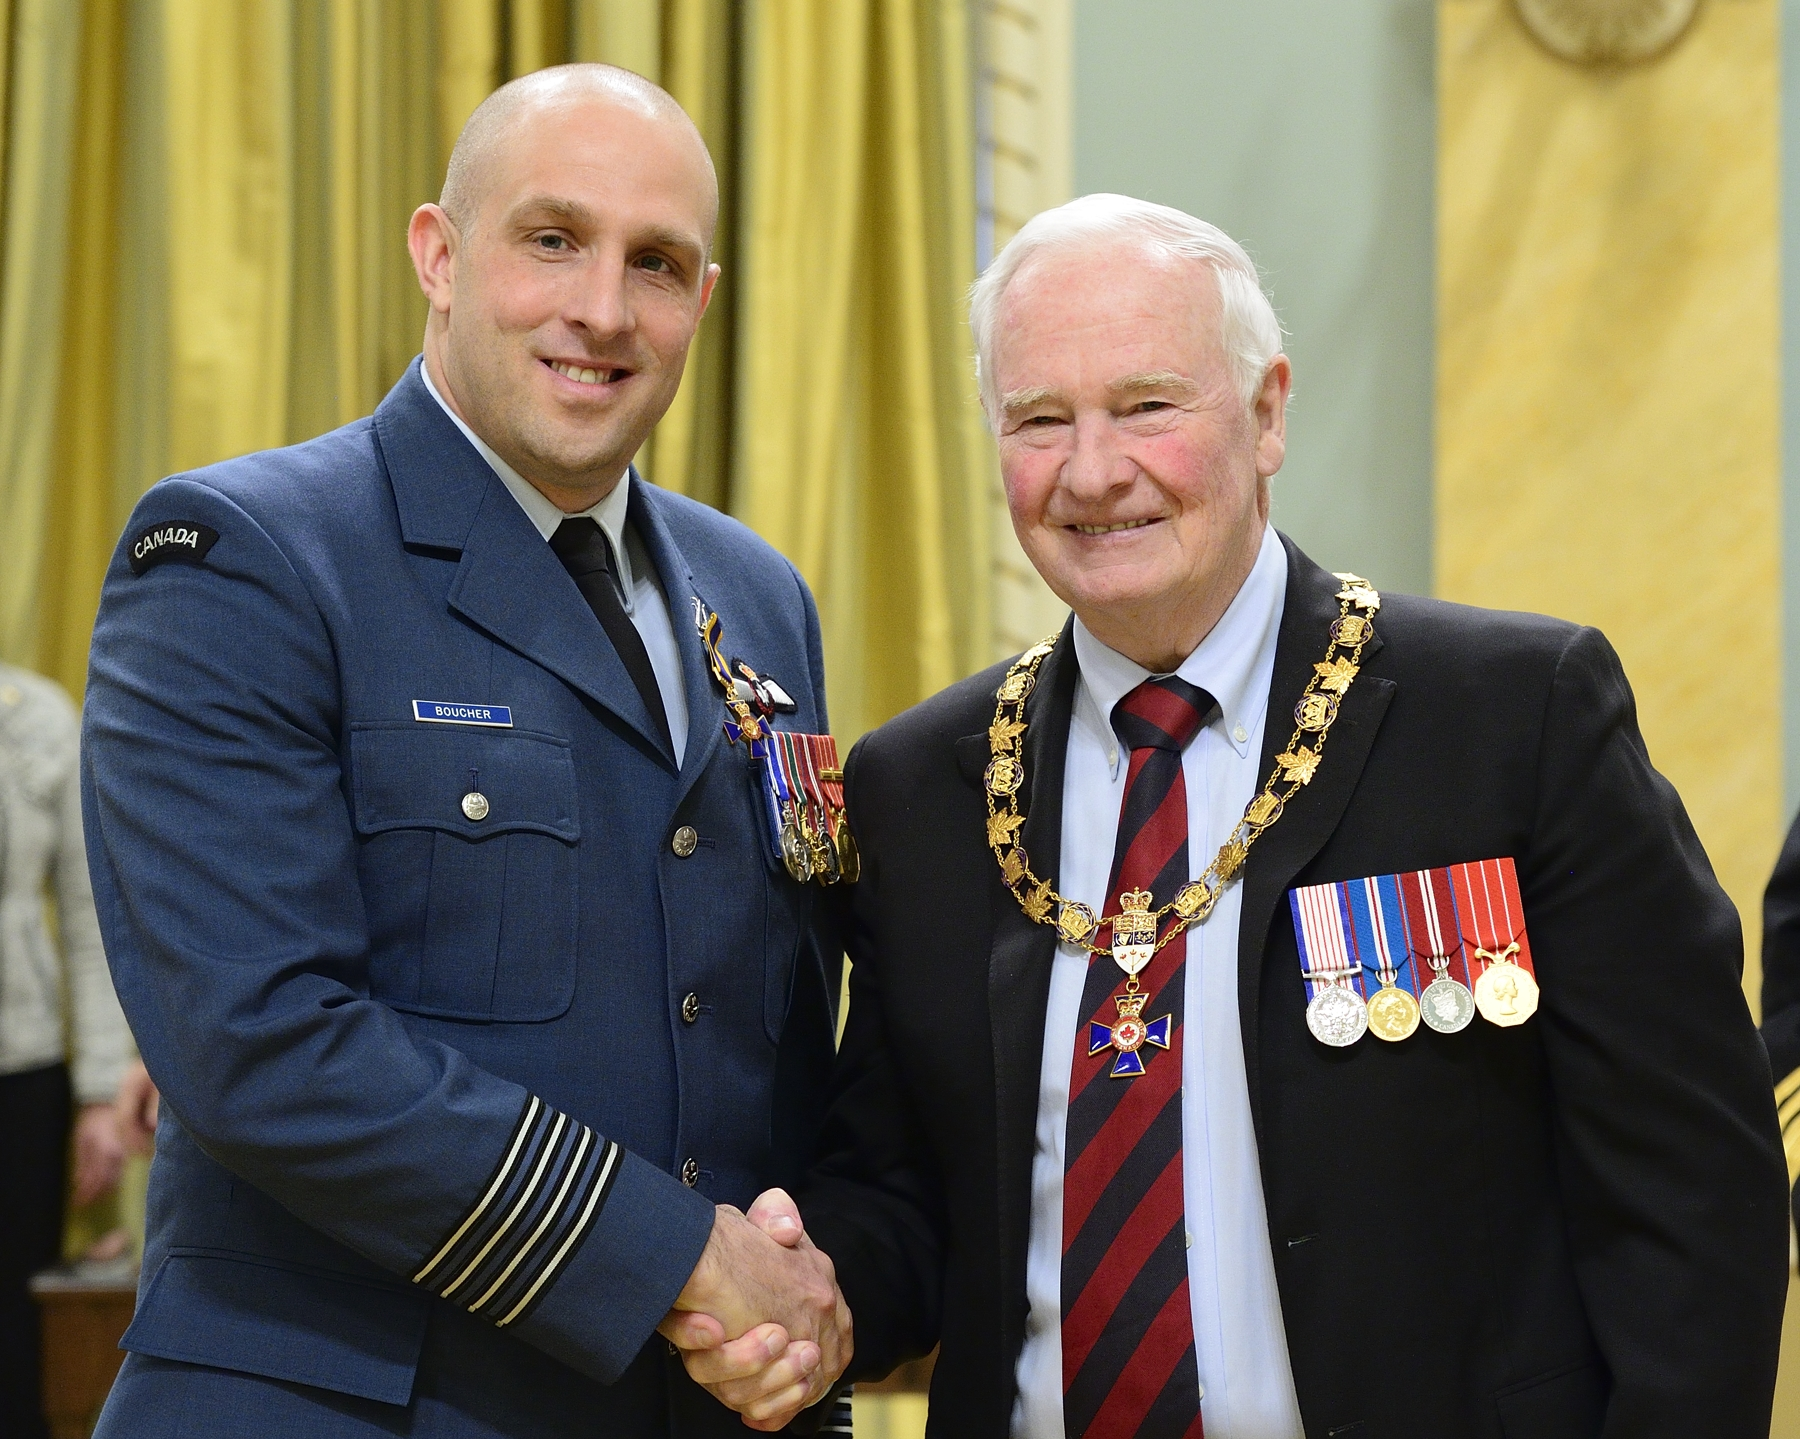 Governor General and Commander-in-Chief of Canada David Johnston presents the Order of Military Merit to Lieutenant-Colonel Jeannot Emmanuel Boucher, OMM, MSM, CD, from the 